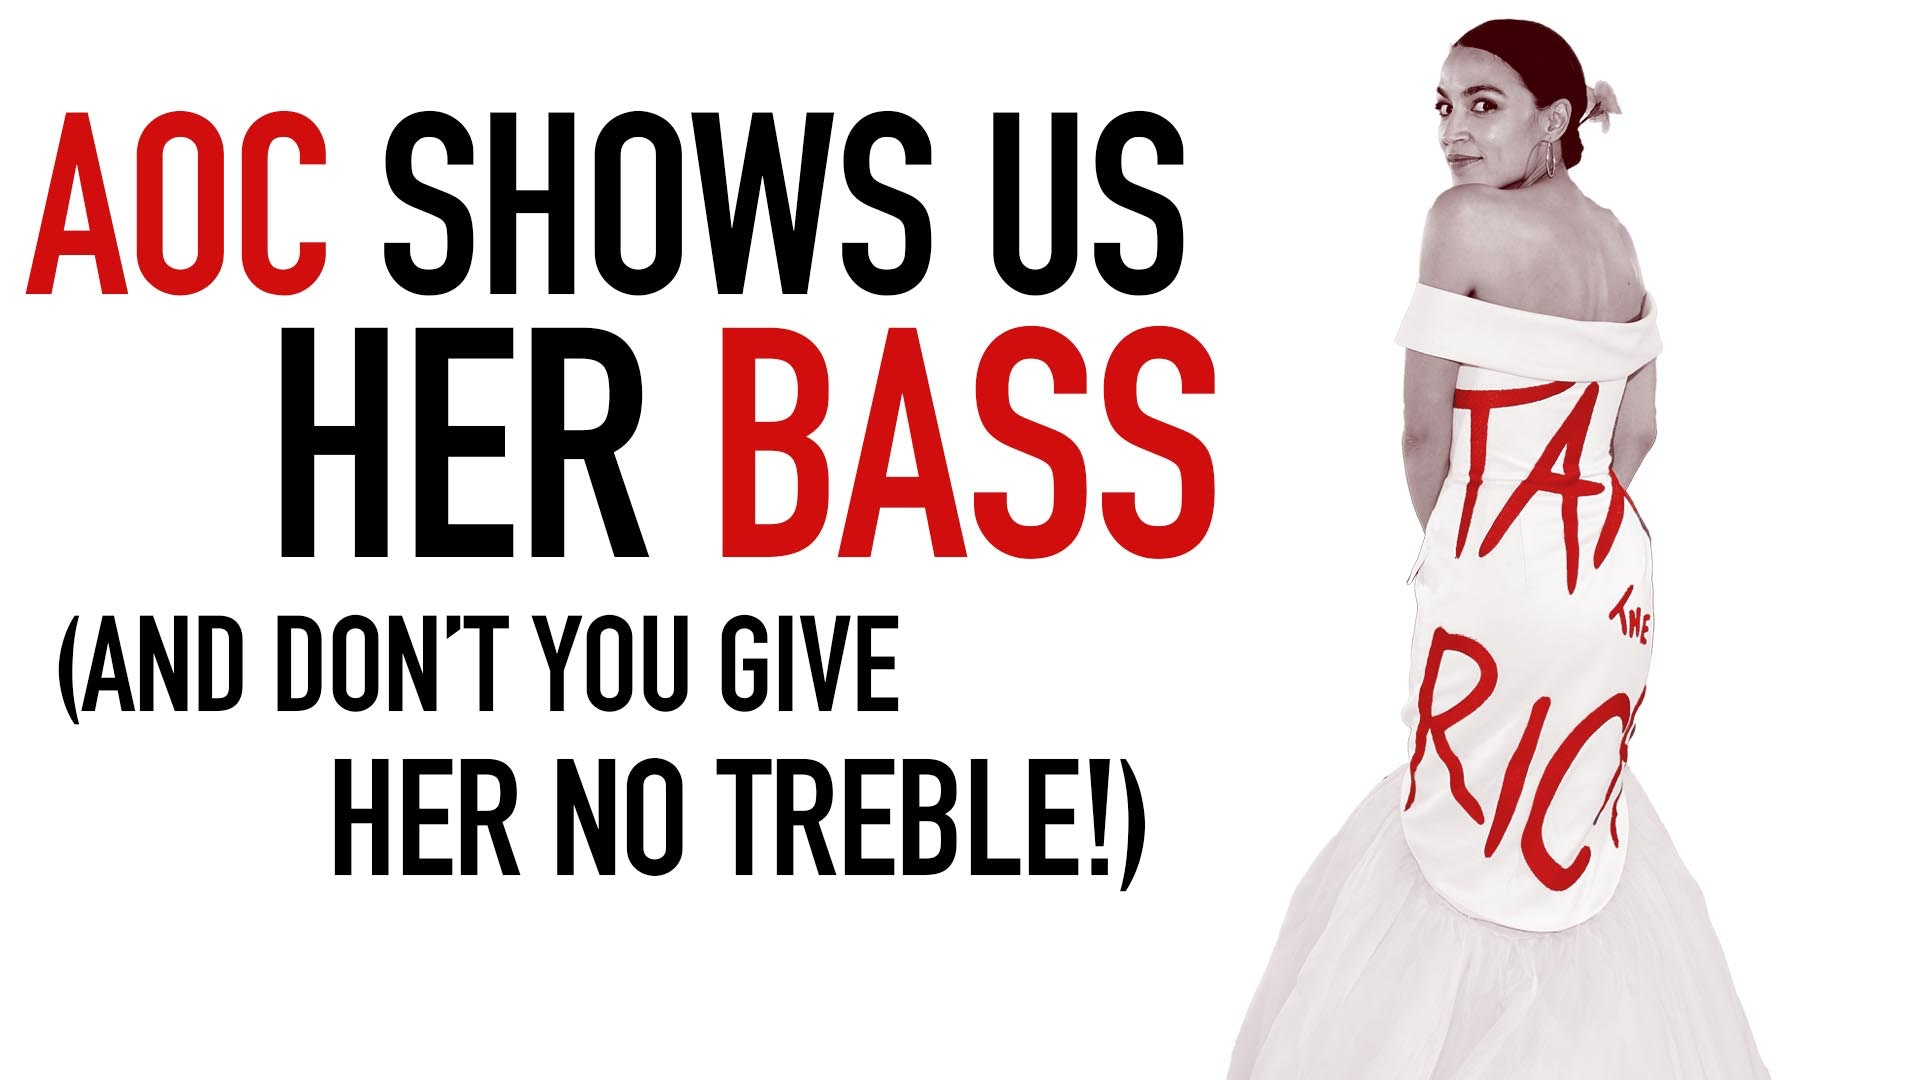 Ep. 1048 -AOC Shows Us Her Bass (And Don't You Give Her No Treble!)